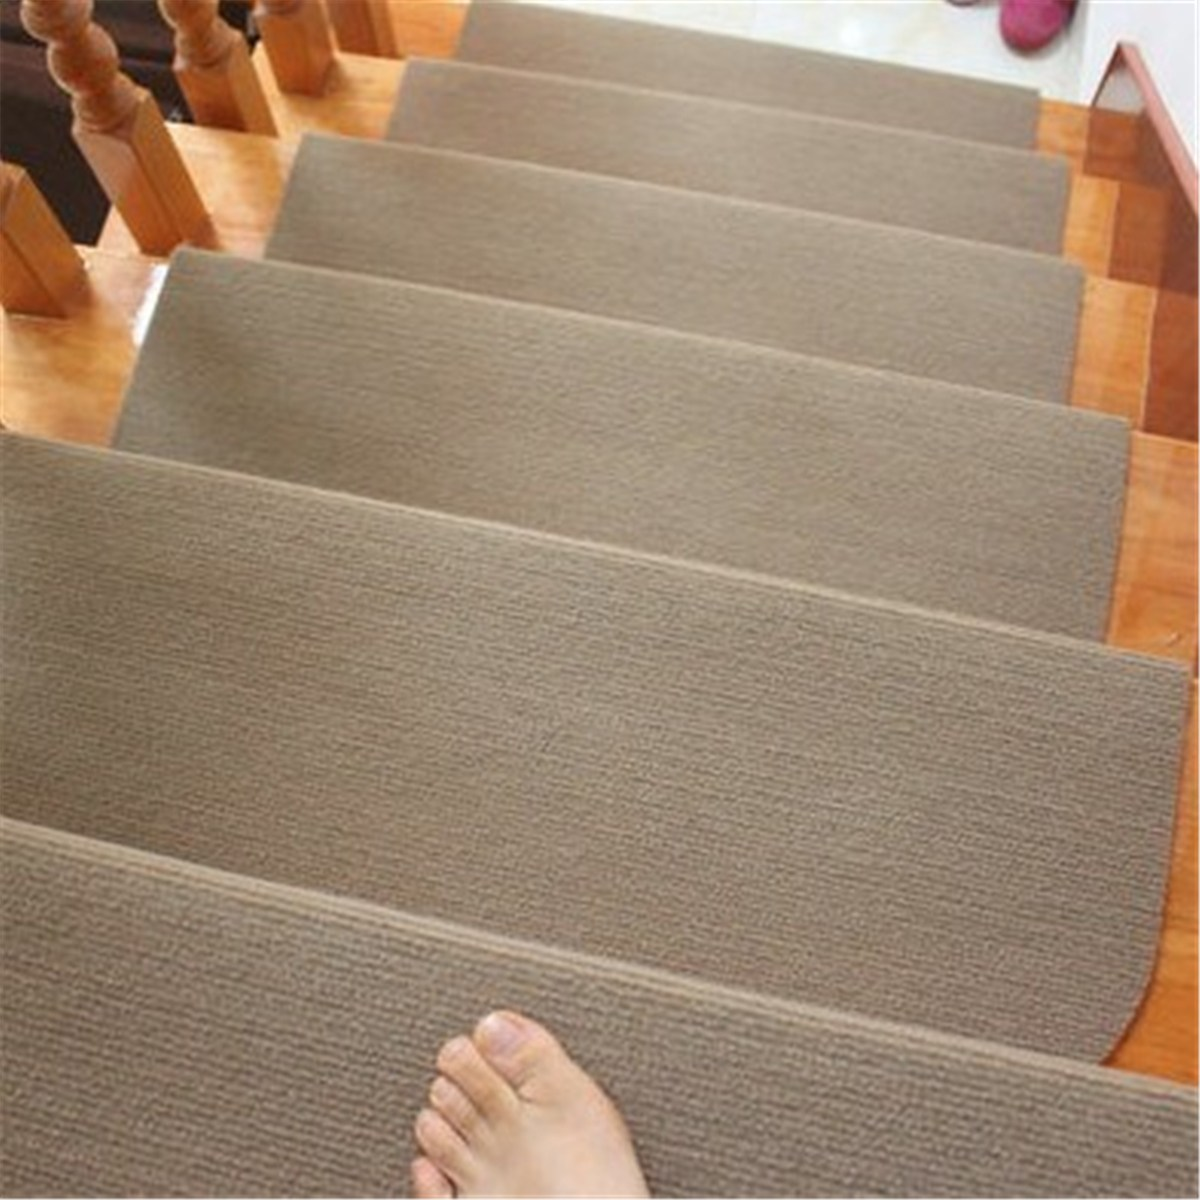 55x24cm Tread Household Door Non Woven Carpet Stair Mats Non Slip PVC  Bottom Step Area Pads Rug Home Textiles Decoration 2 Color In Carpet From  Home ...